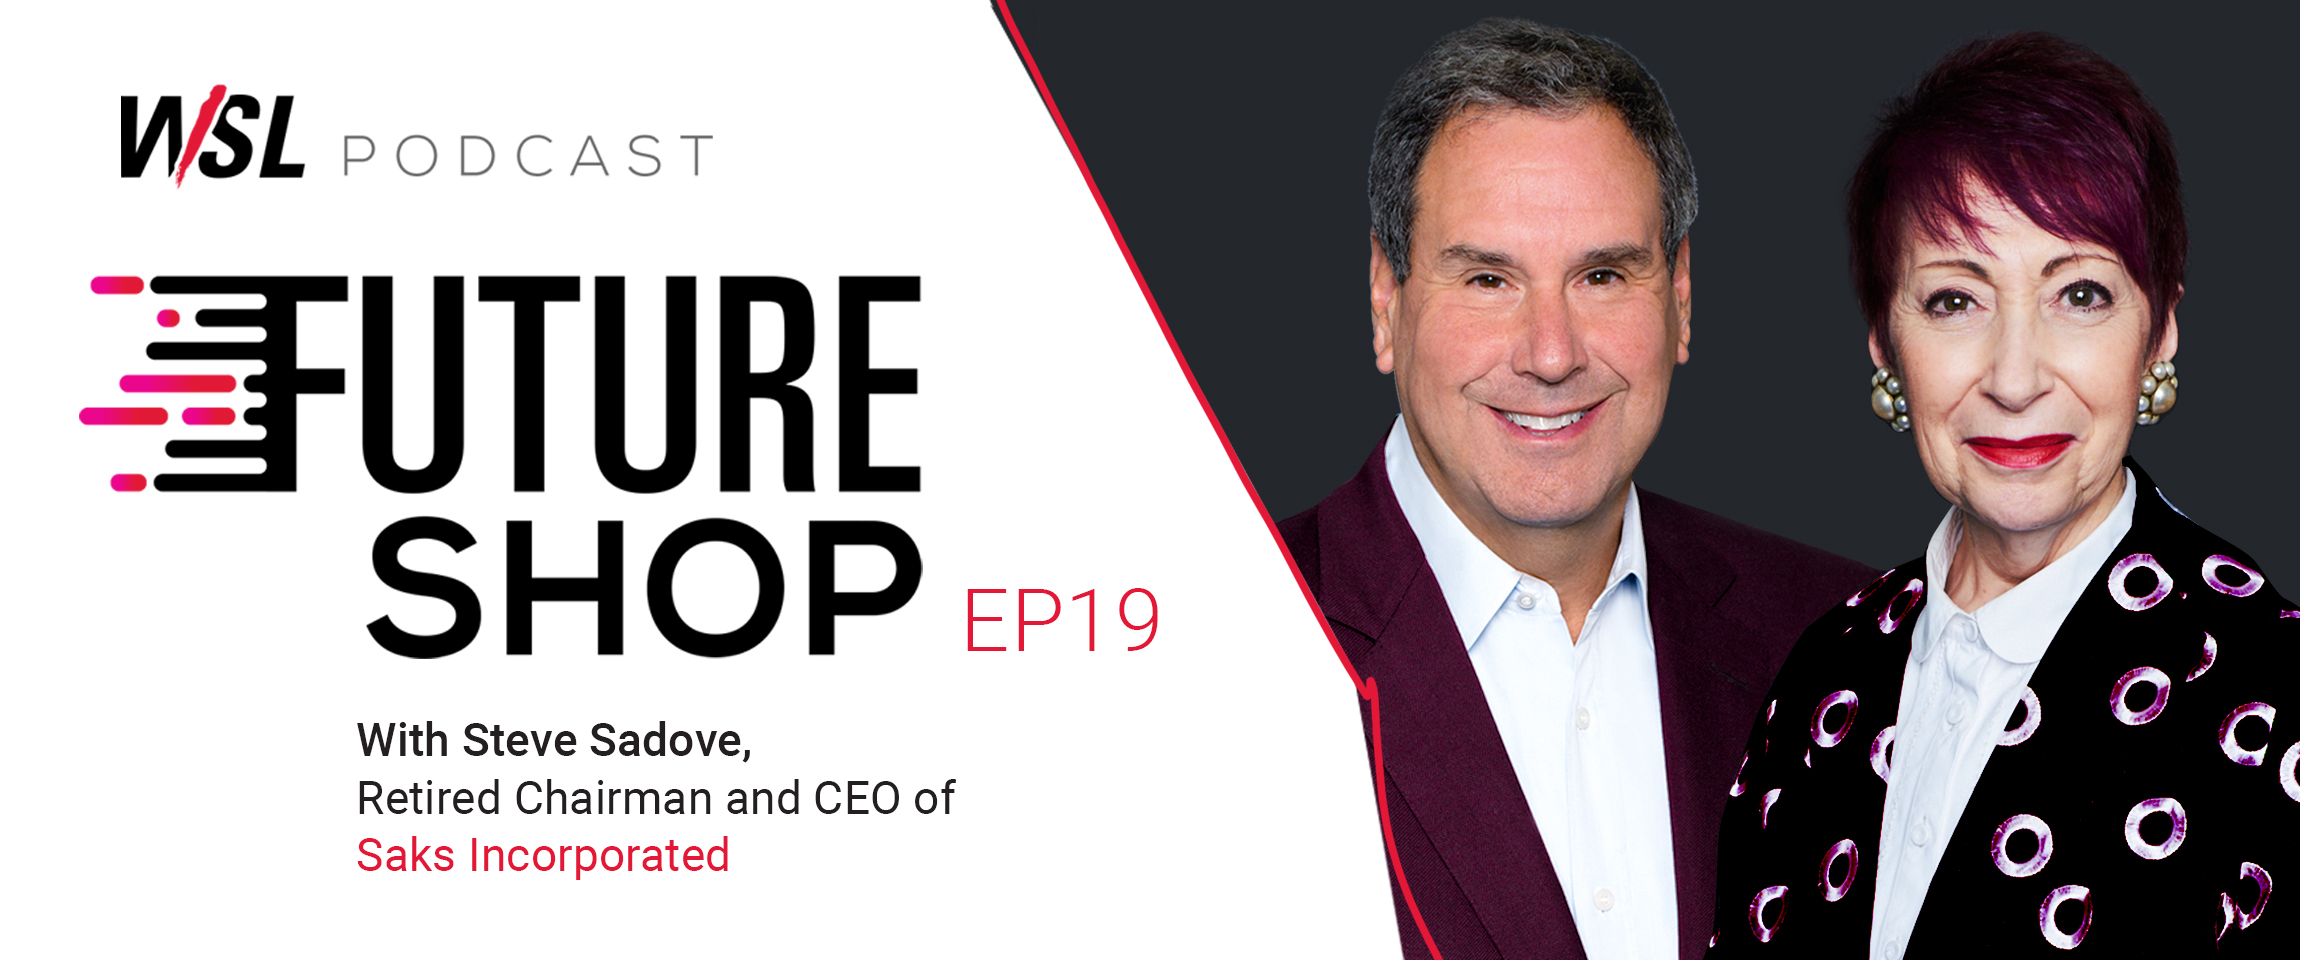 Retail After the Splurge | Future Shop Podcast EP19